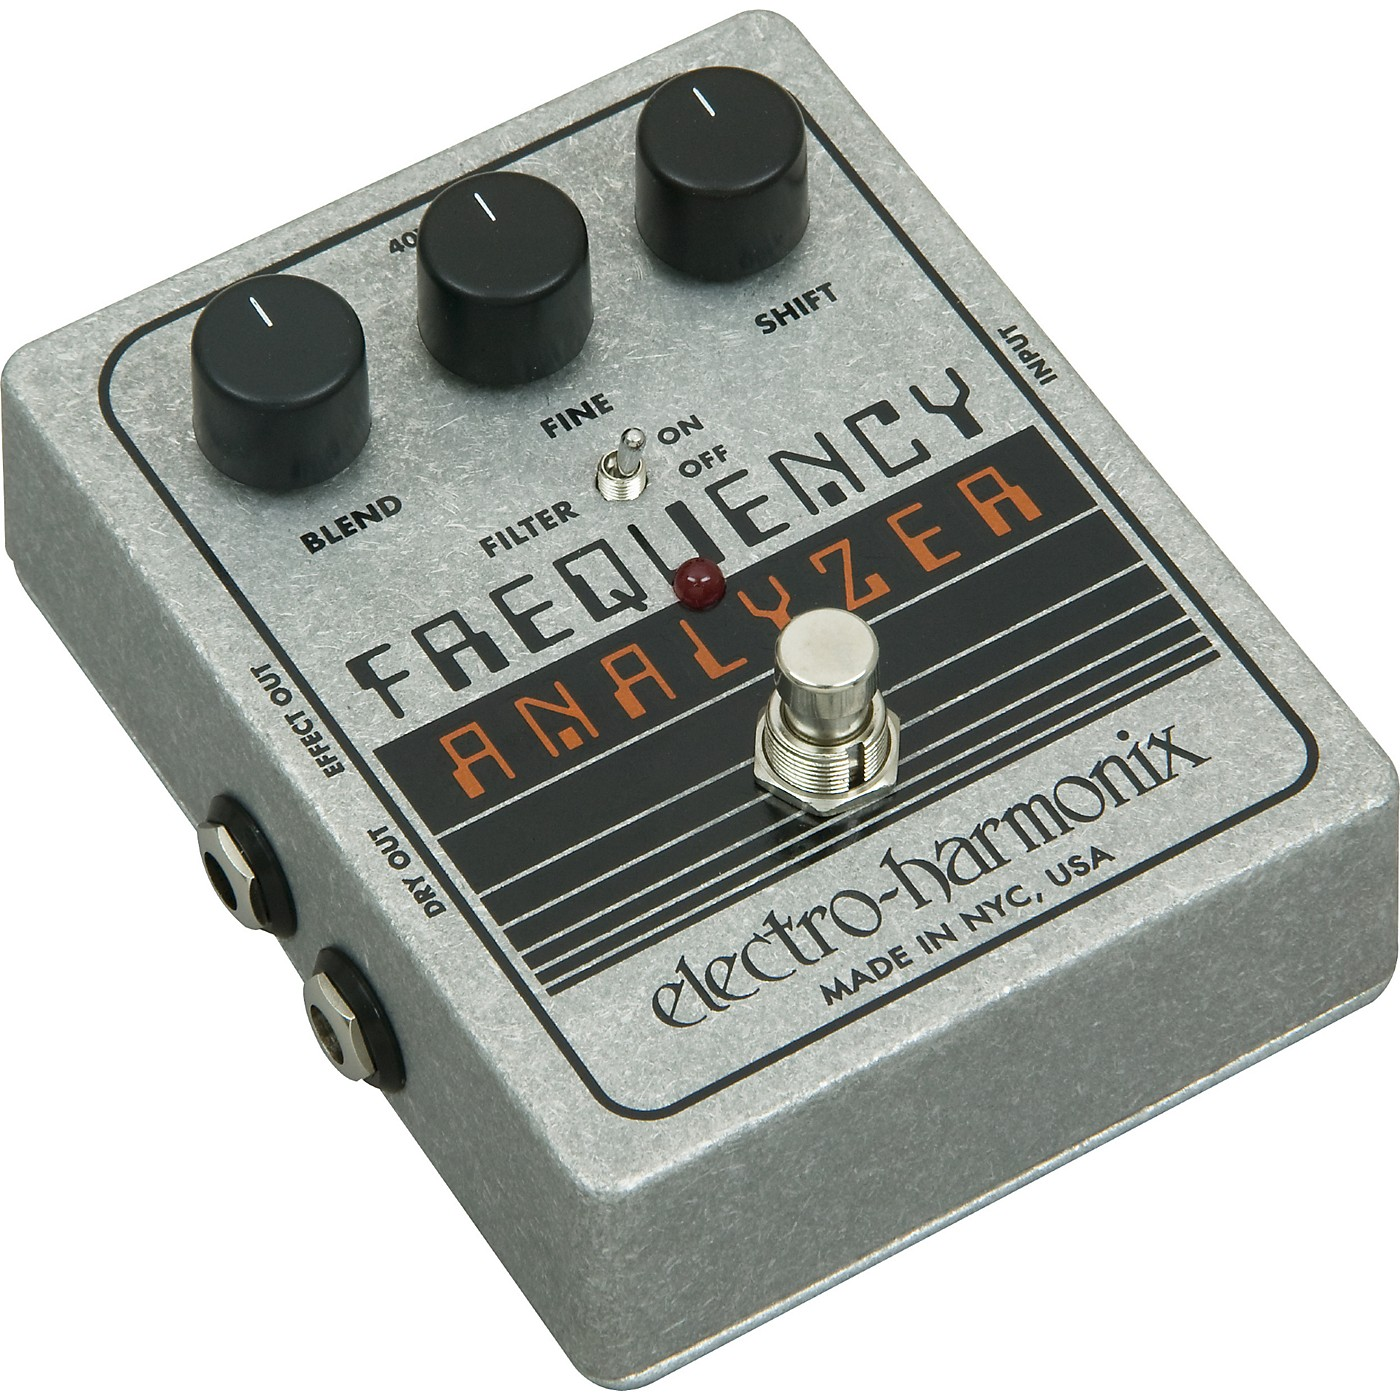 Electro-Harmonix Frequency Analyzer XO Guitar Effects Pedal thumbnail